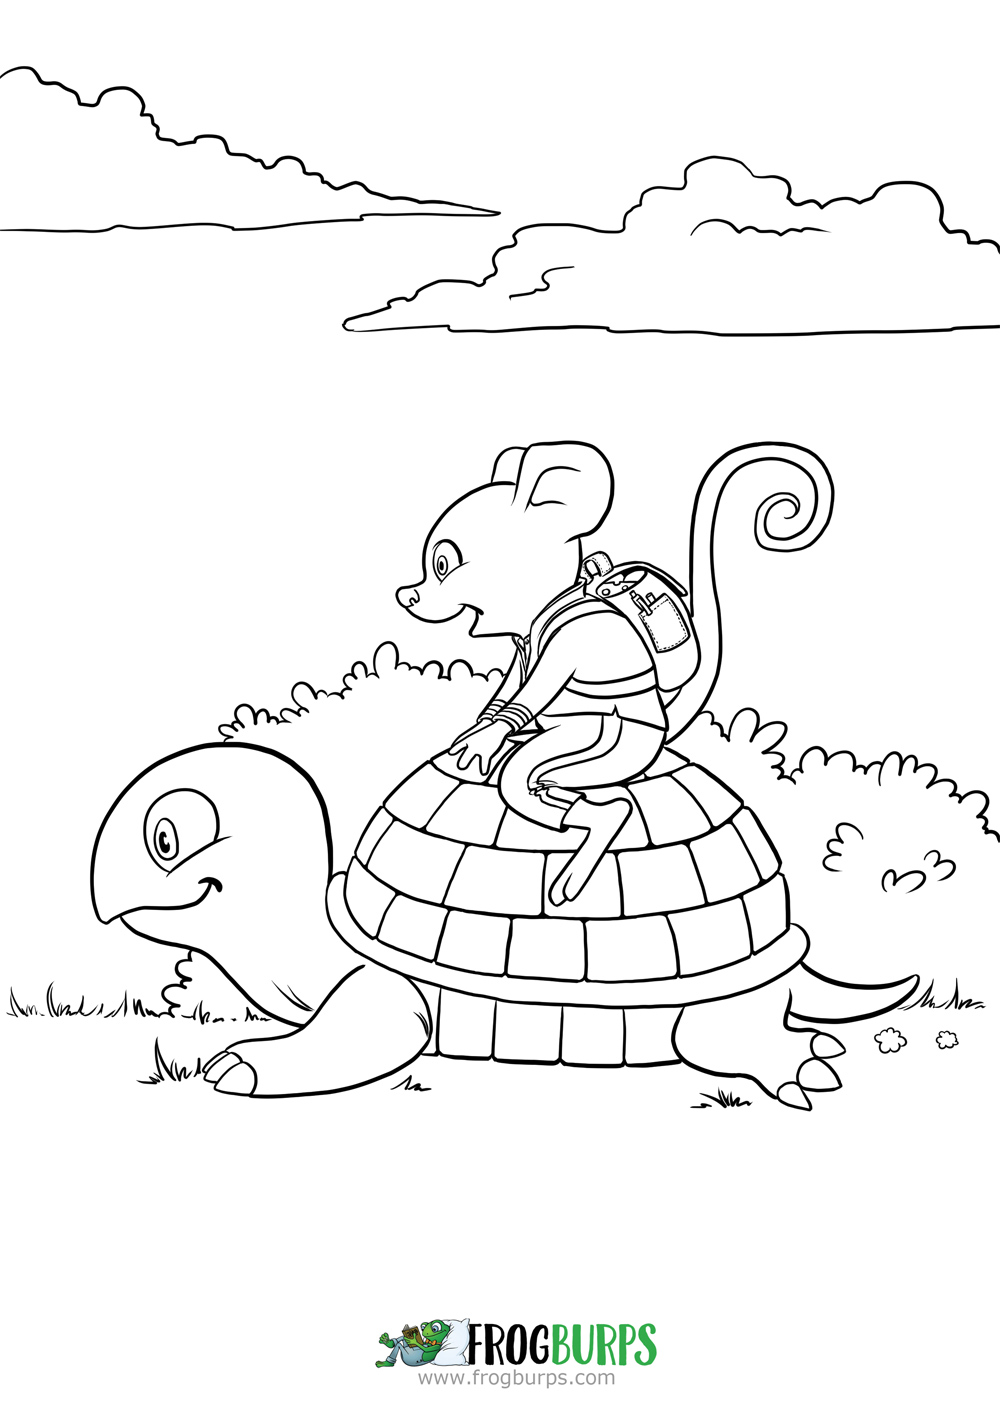 Slow Adventure | Coloring Page